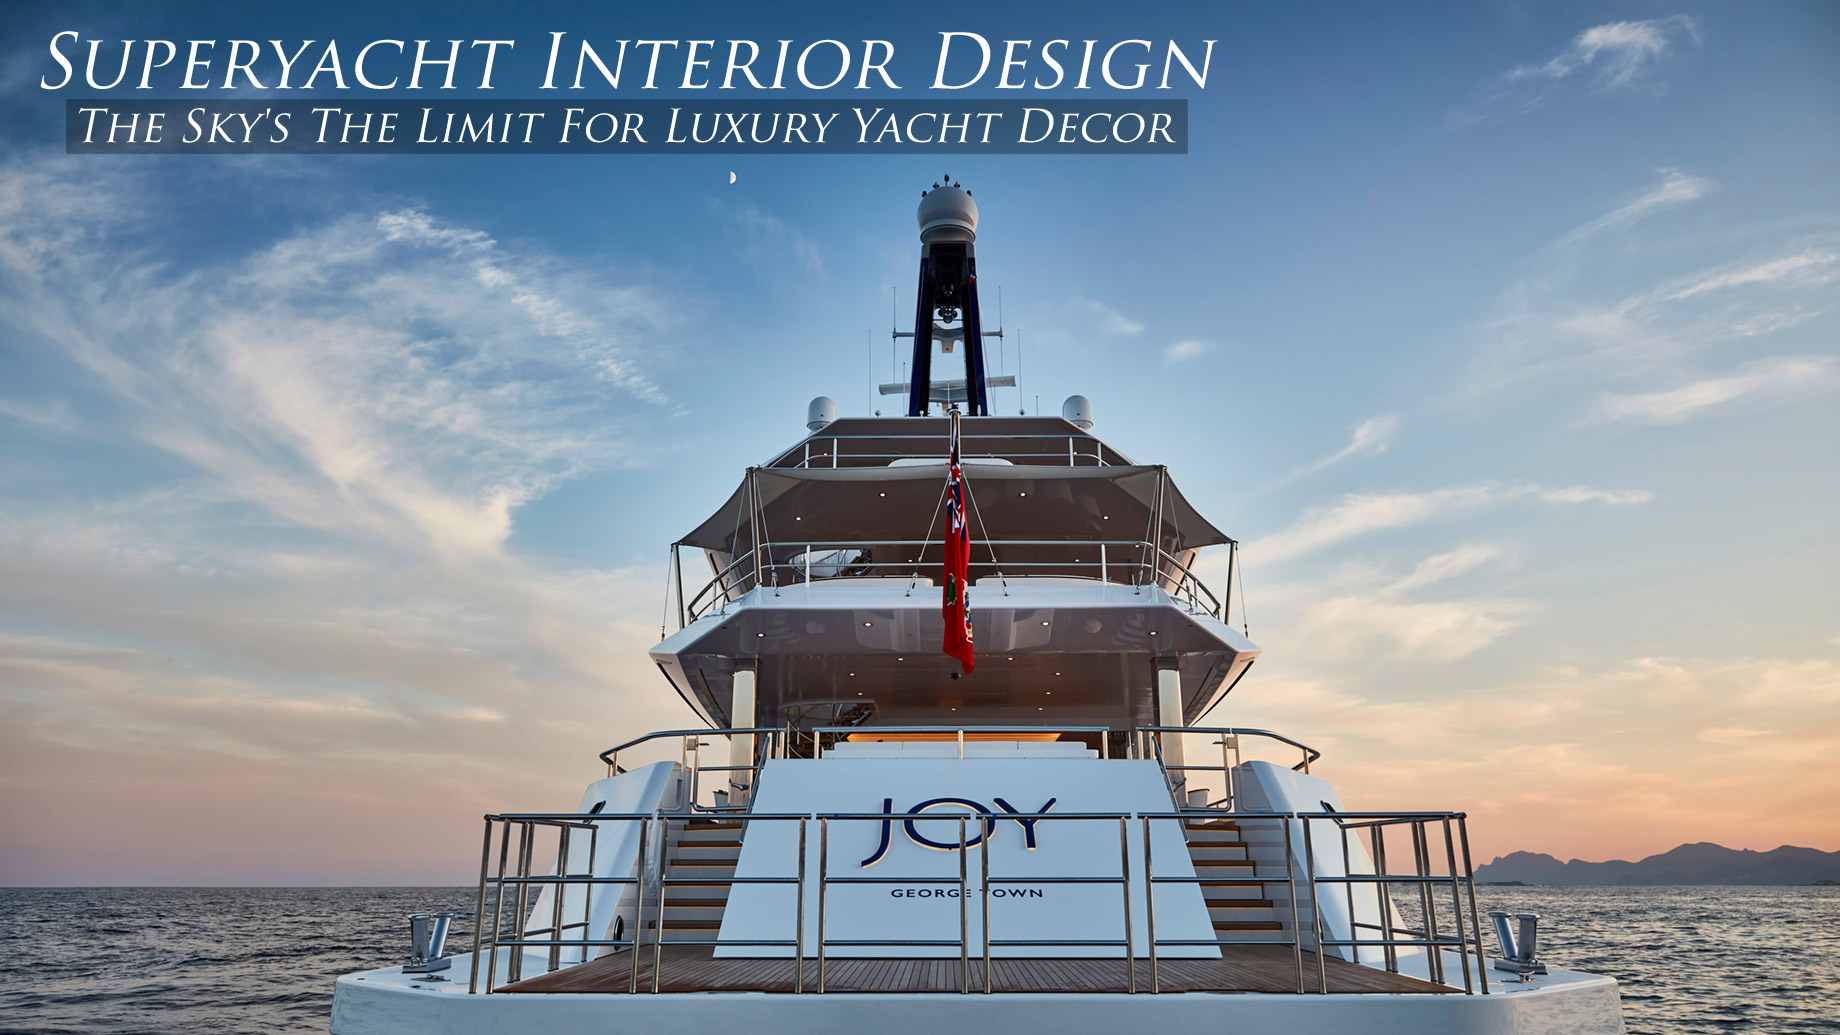 Superyacht Interior Design – The Sky's The Limit For Luxury Yacht Decor